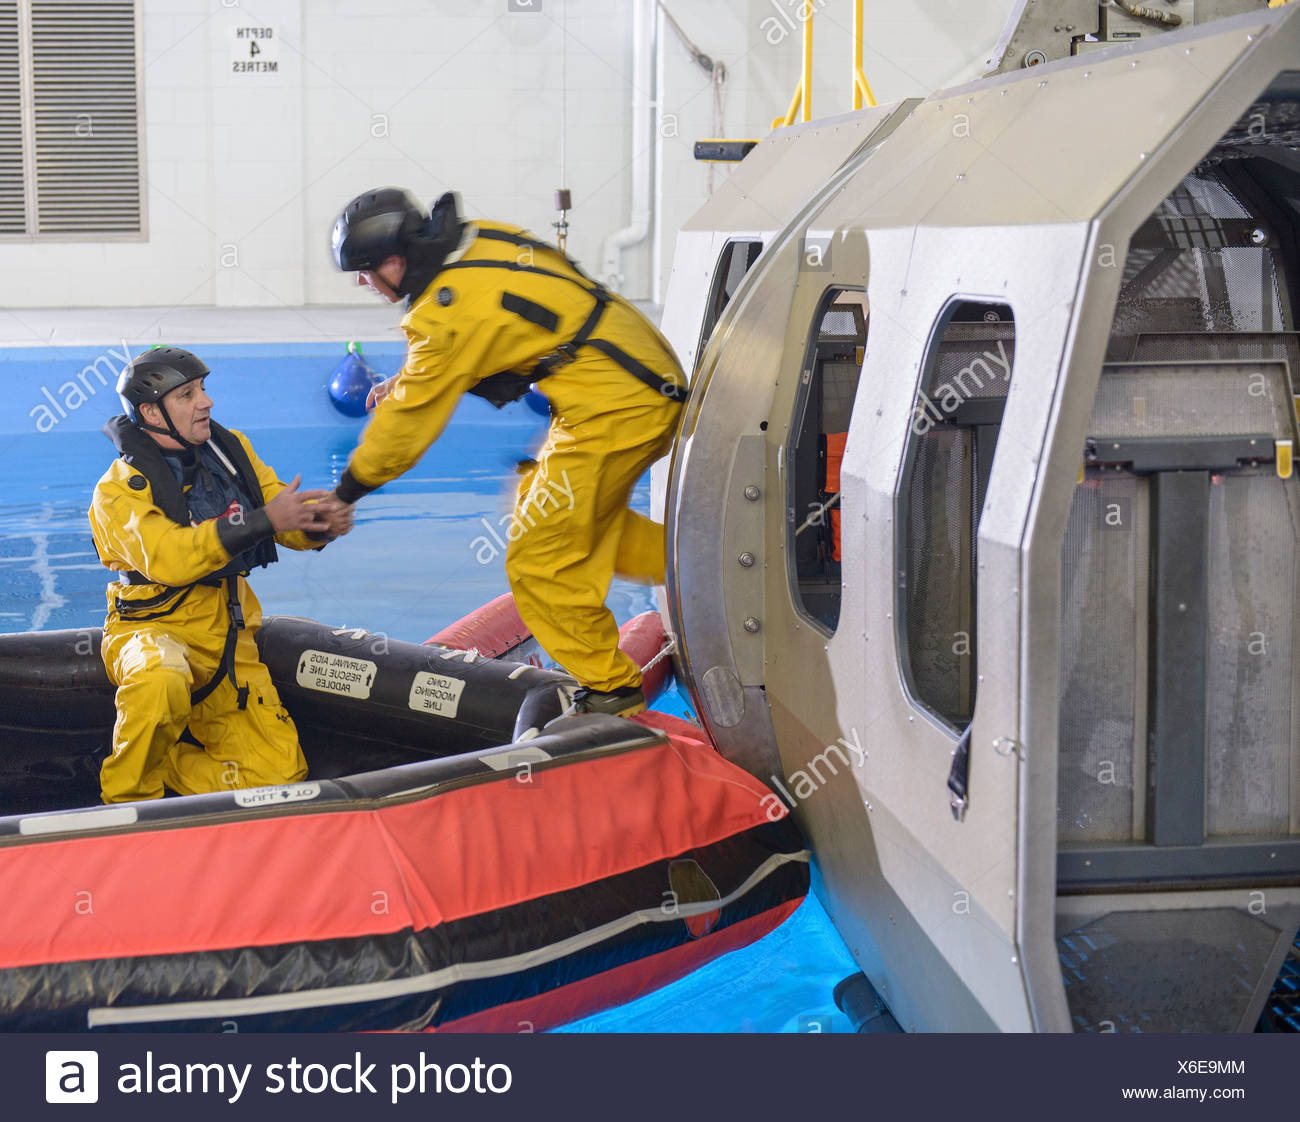 Oil workers learning survival techniques - Stock Image